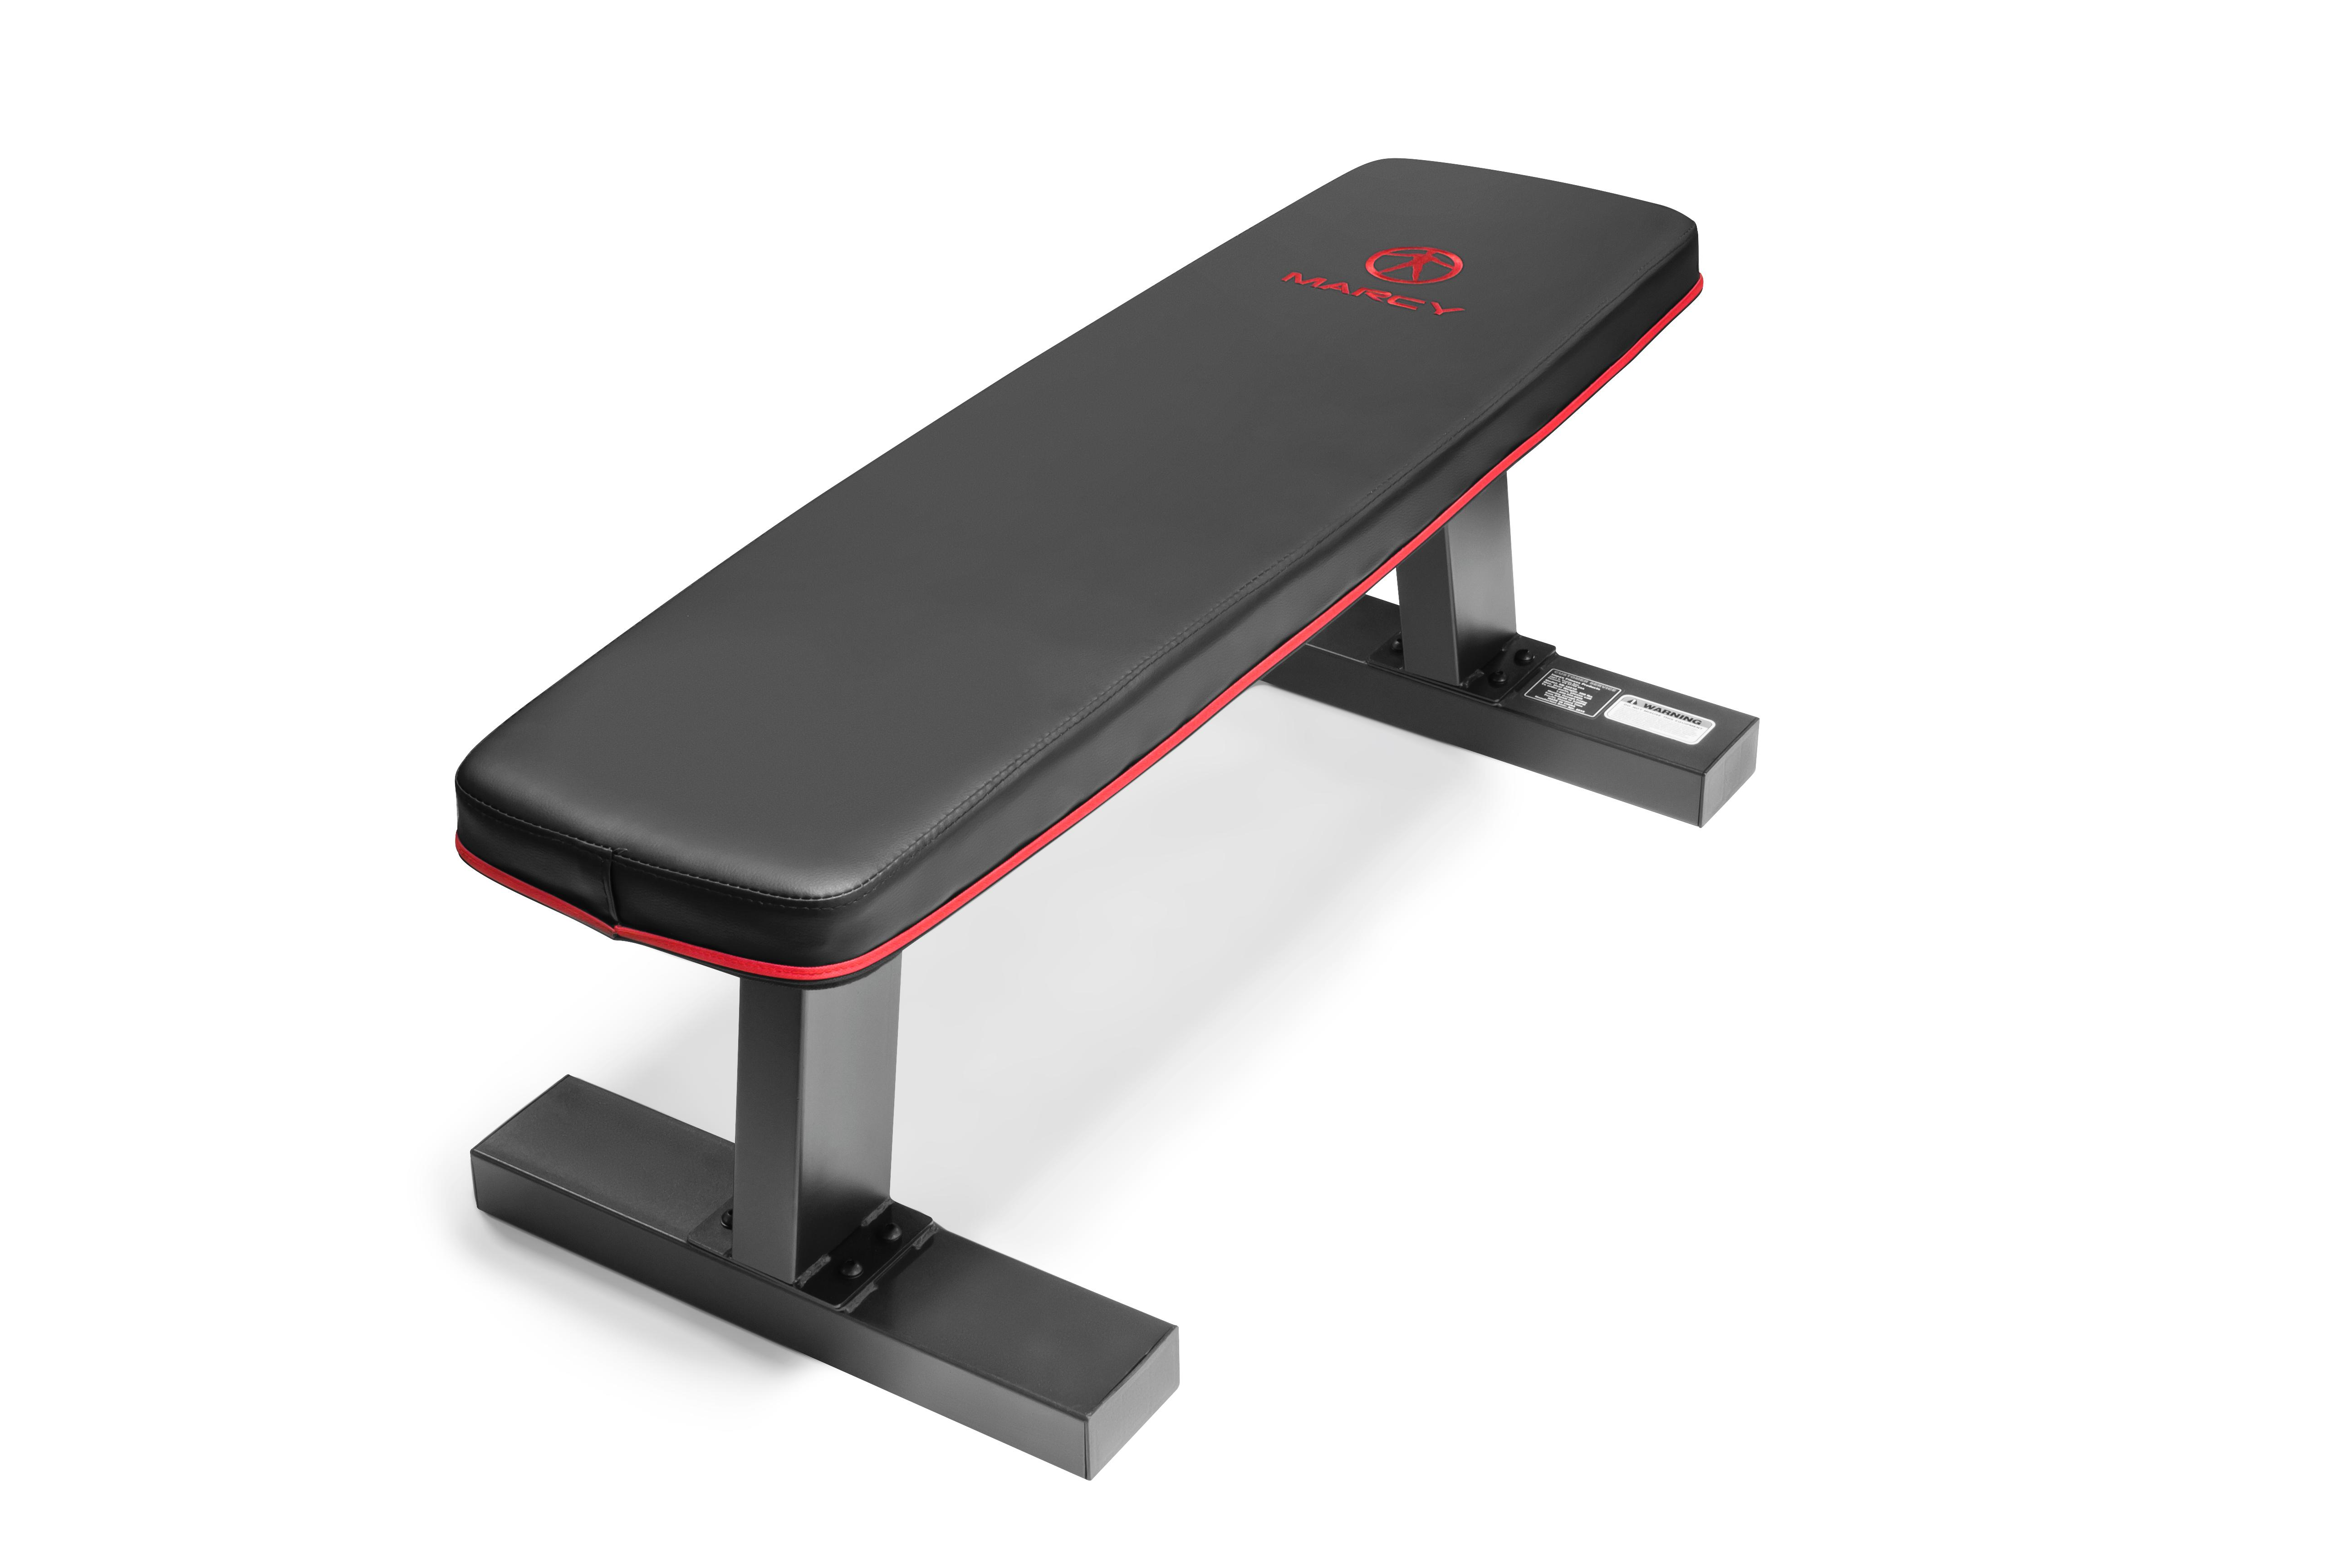 Marcy Sb 10510 Deluxe Versatile Flat Bench Steel Frame Sports Outdoors